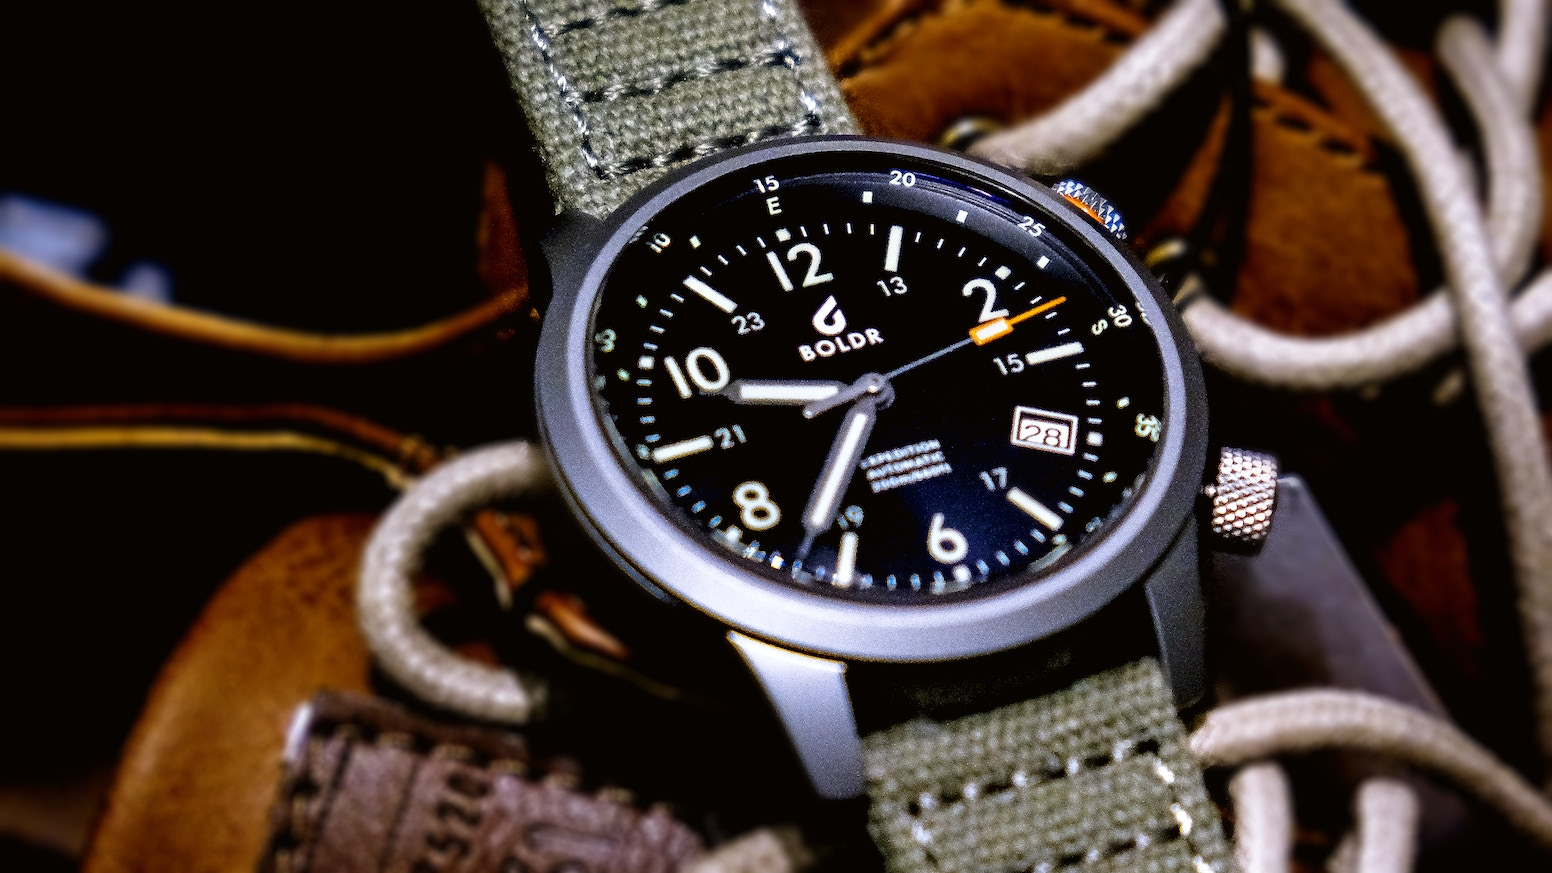 The BOLDR Expedition Swiss Automatic field watch, a tough companion to navigate your life's adventures and explorations.